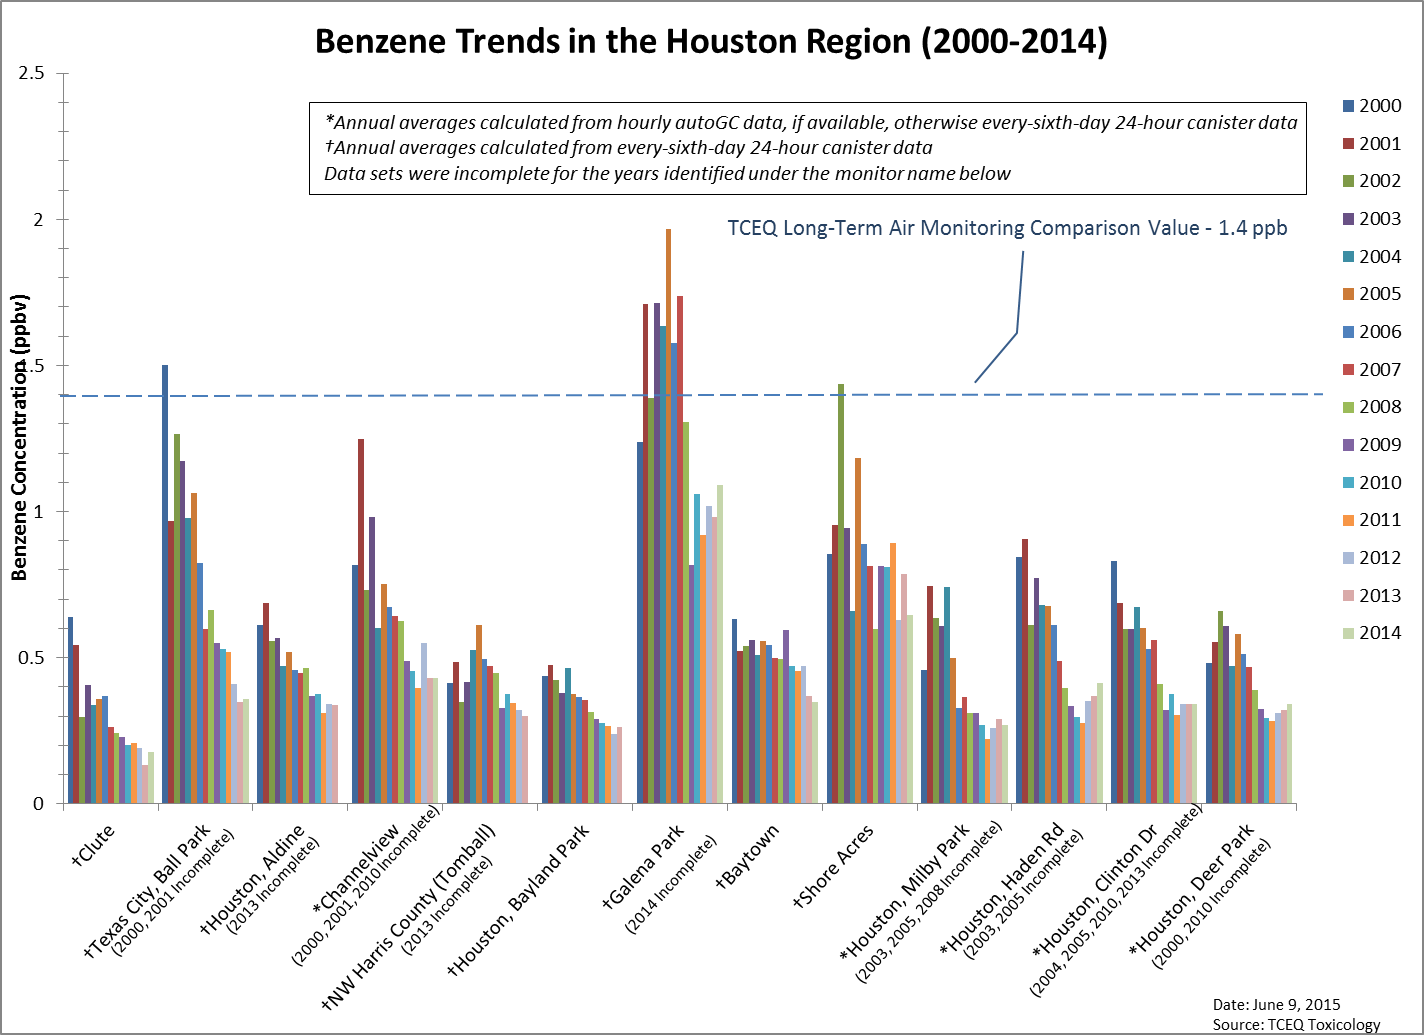 Figure 8. Annual average benzene concentration at Houston monitoring sites active in 2000 and 2014